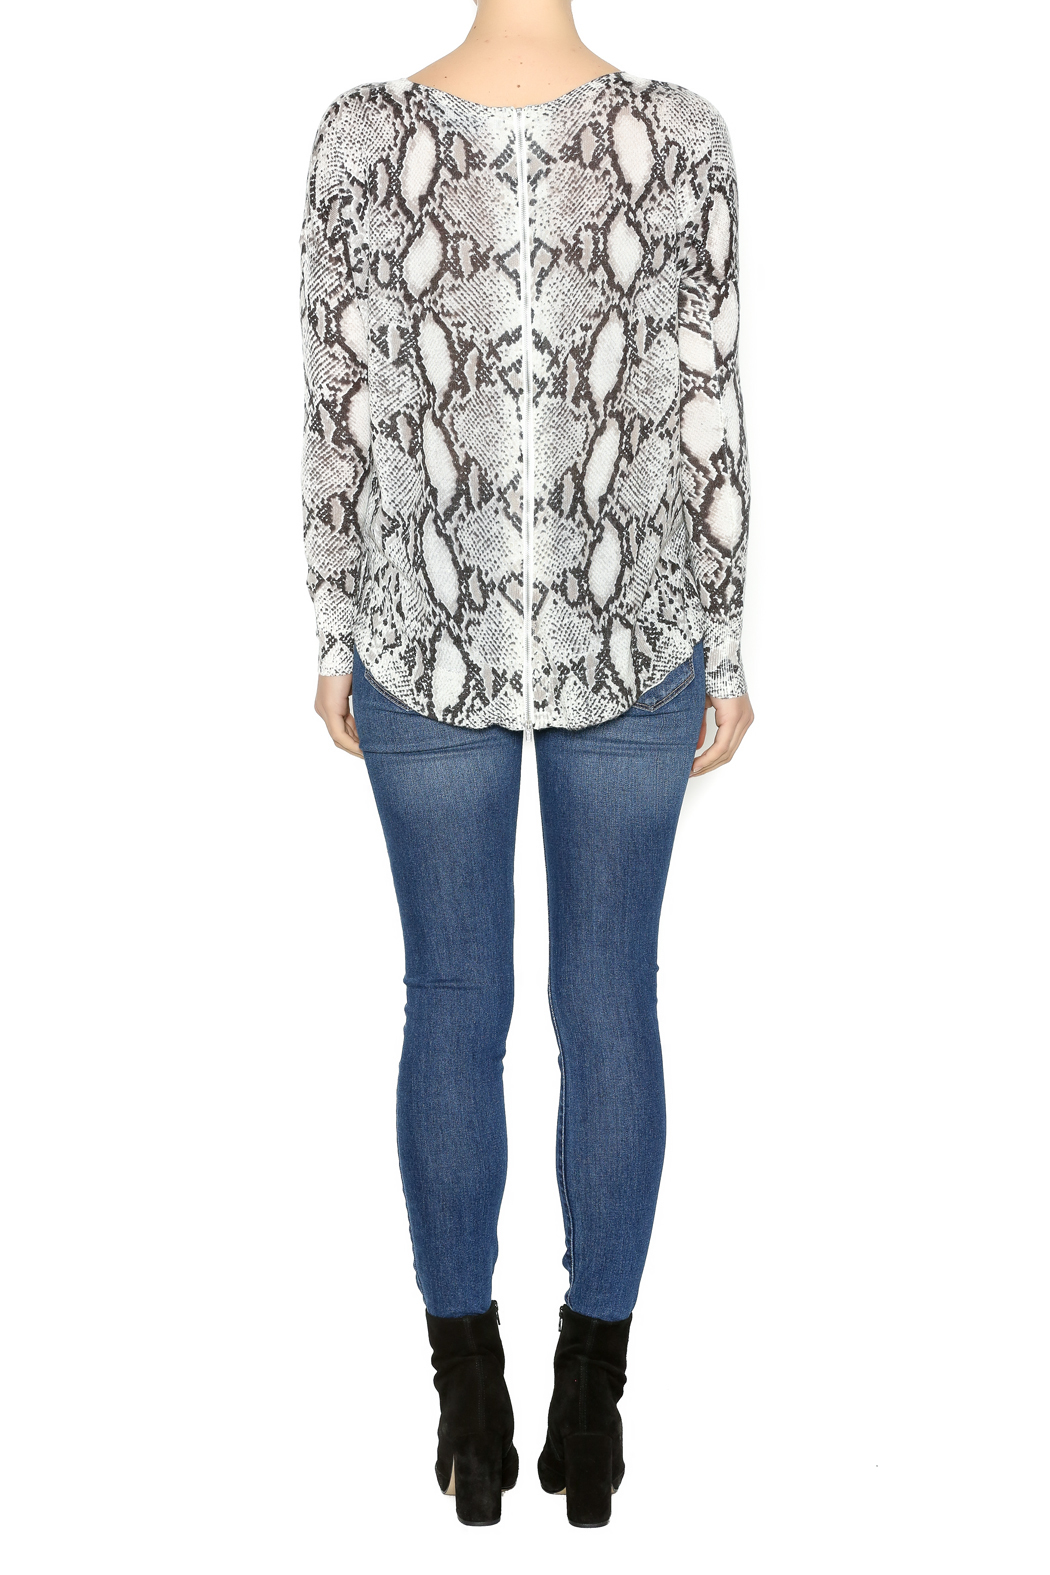 Olivaceous Snake Print Sweater - Side Cropped Image